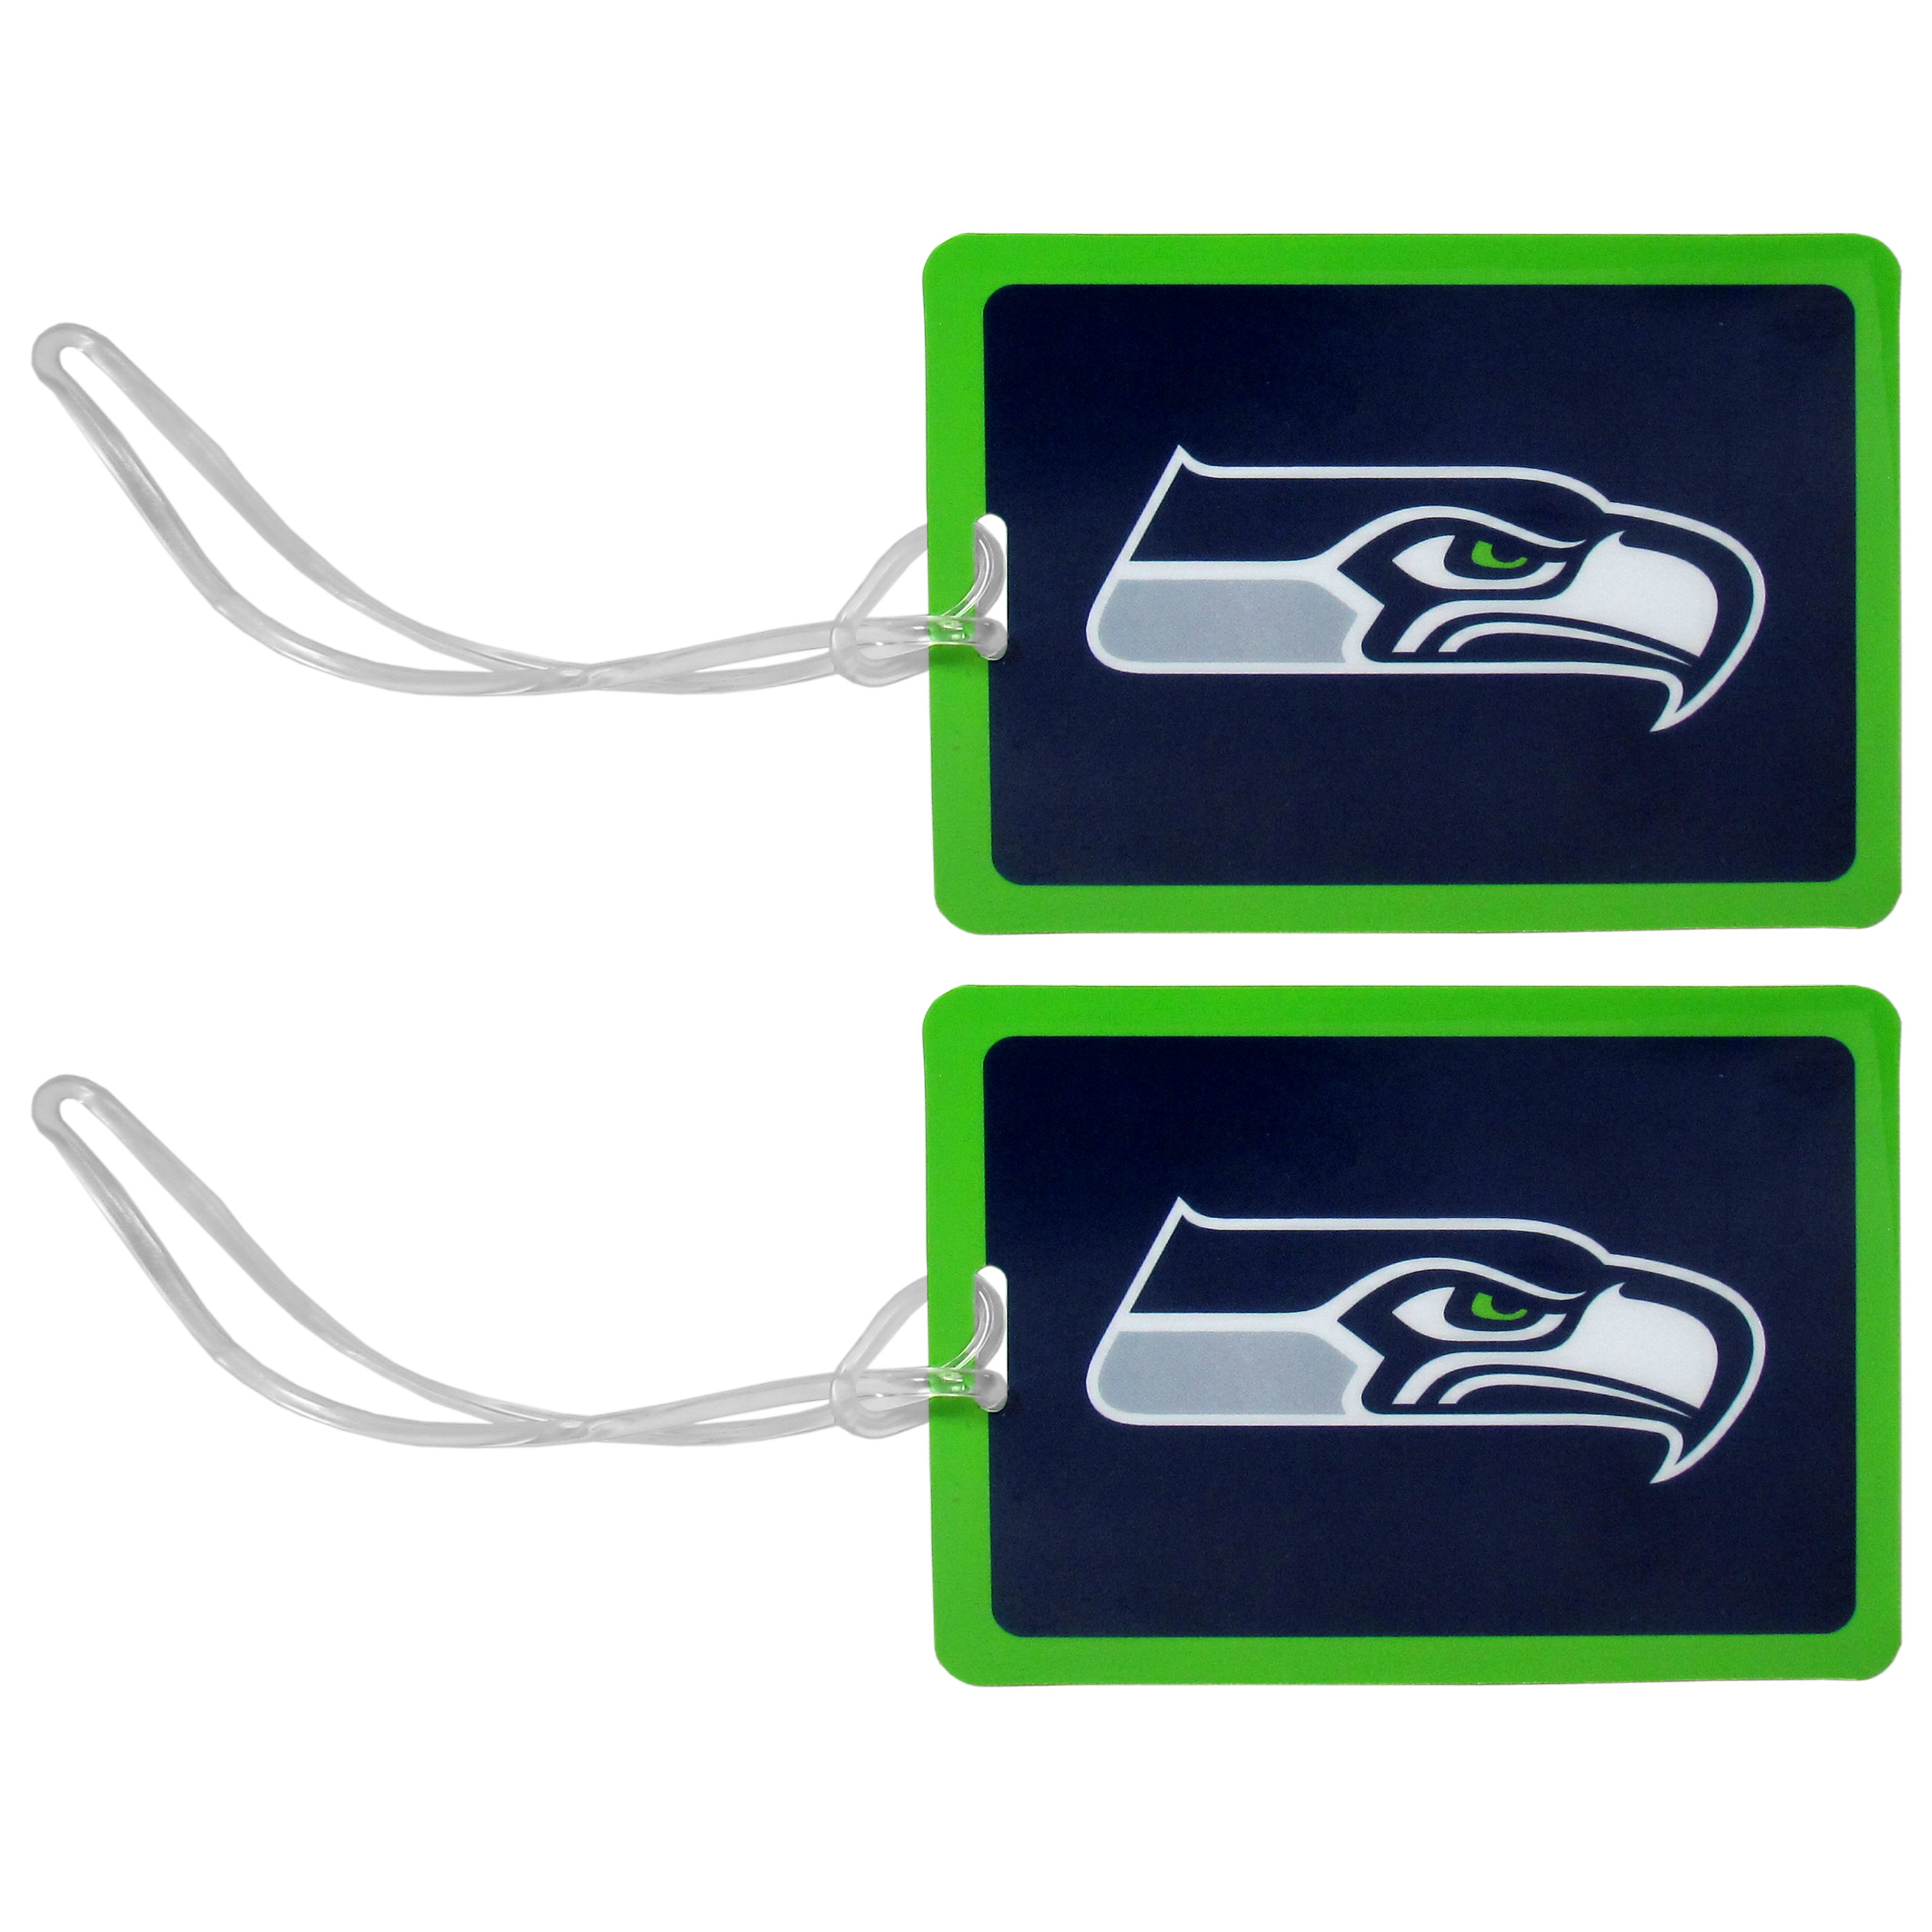 Seattle Seahawks Vinyl Luggage Tag, 2pk - Tired of trying to spot your suitcase or bag in a sea of luggage? Try our large and colorful Seattle Seahawks luggage tags. The tag is 4x3 inches and has a 5 inch cord to attach it easily to your bags, backpacks or luggage. The front of the tag features the team logo in a bright, team colored background and you can write you name, address and phone number on the back of the tag.